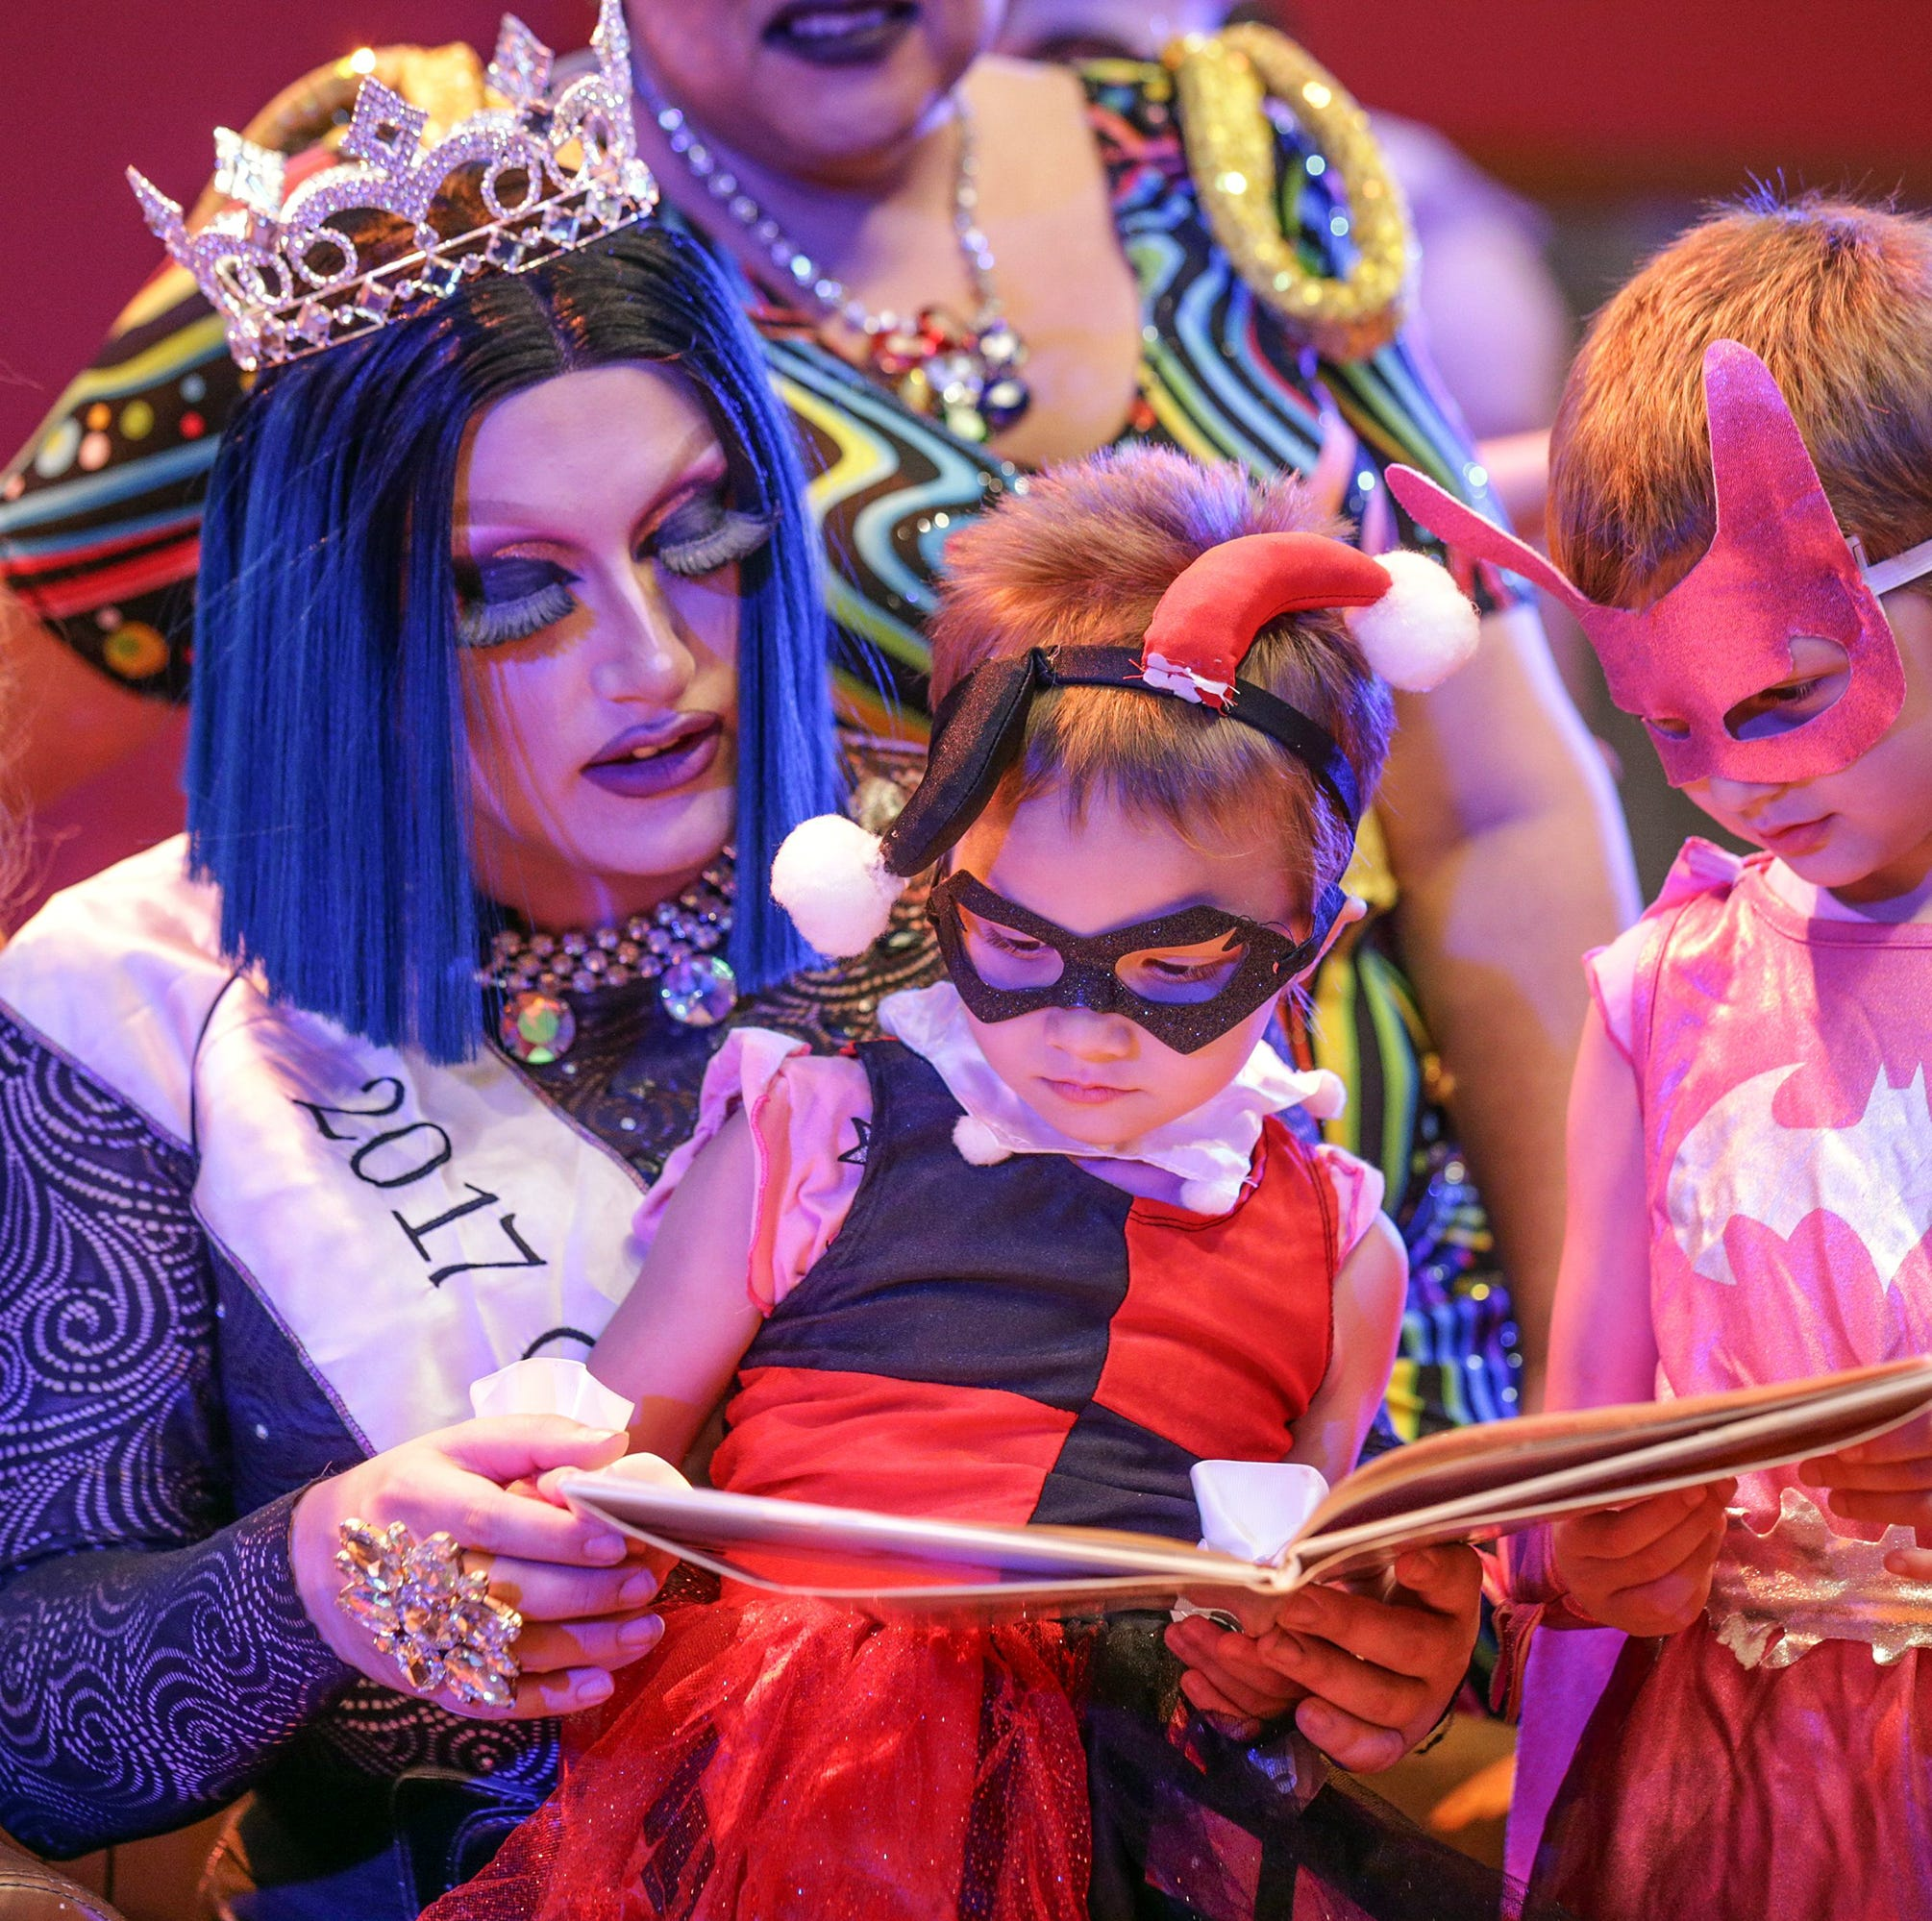 Religious groups attempt to stop Drag Queen Story Time with lawsuit